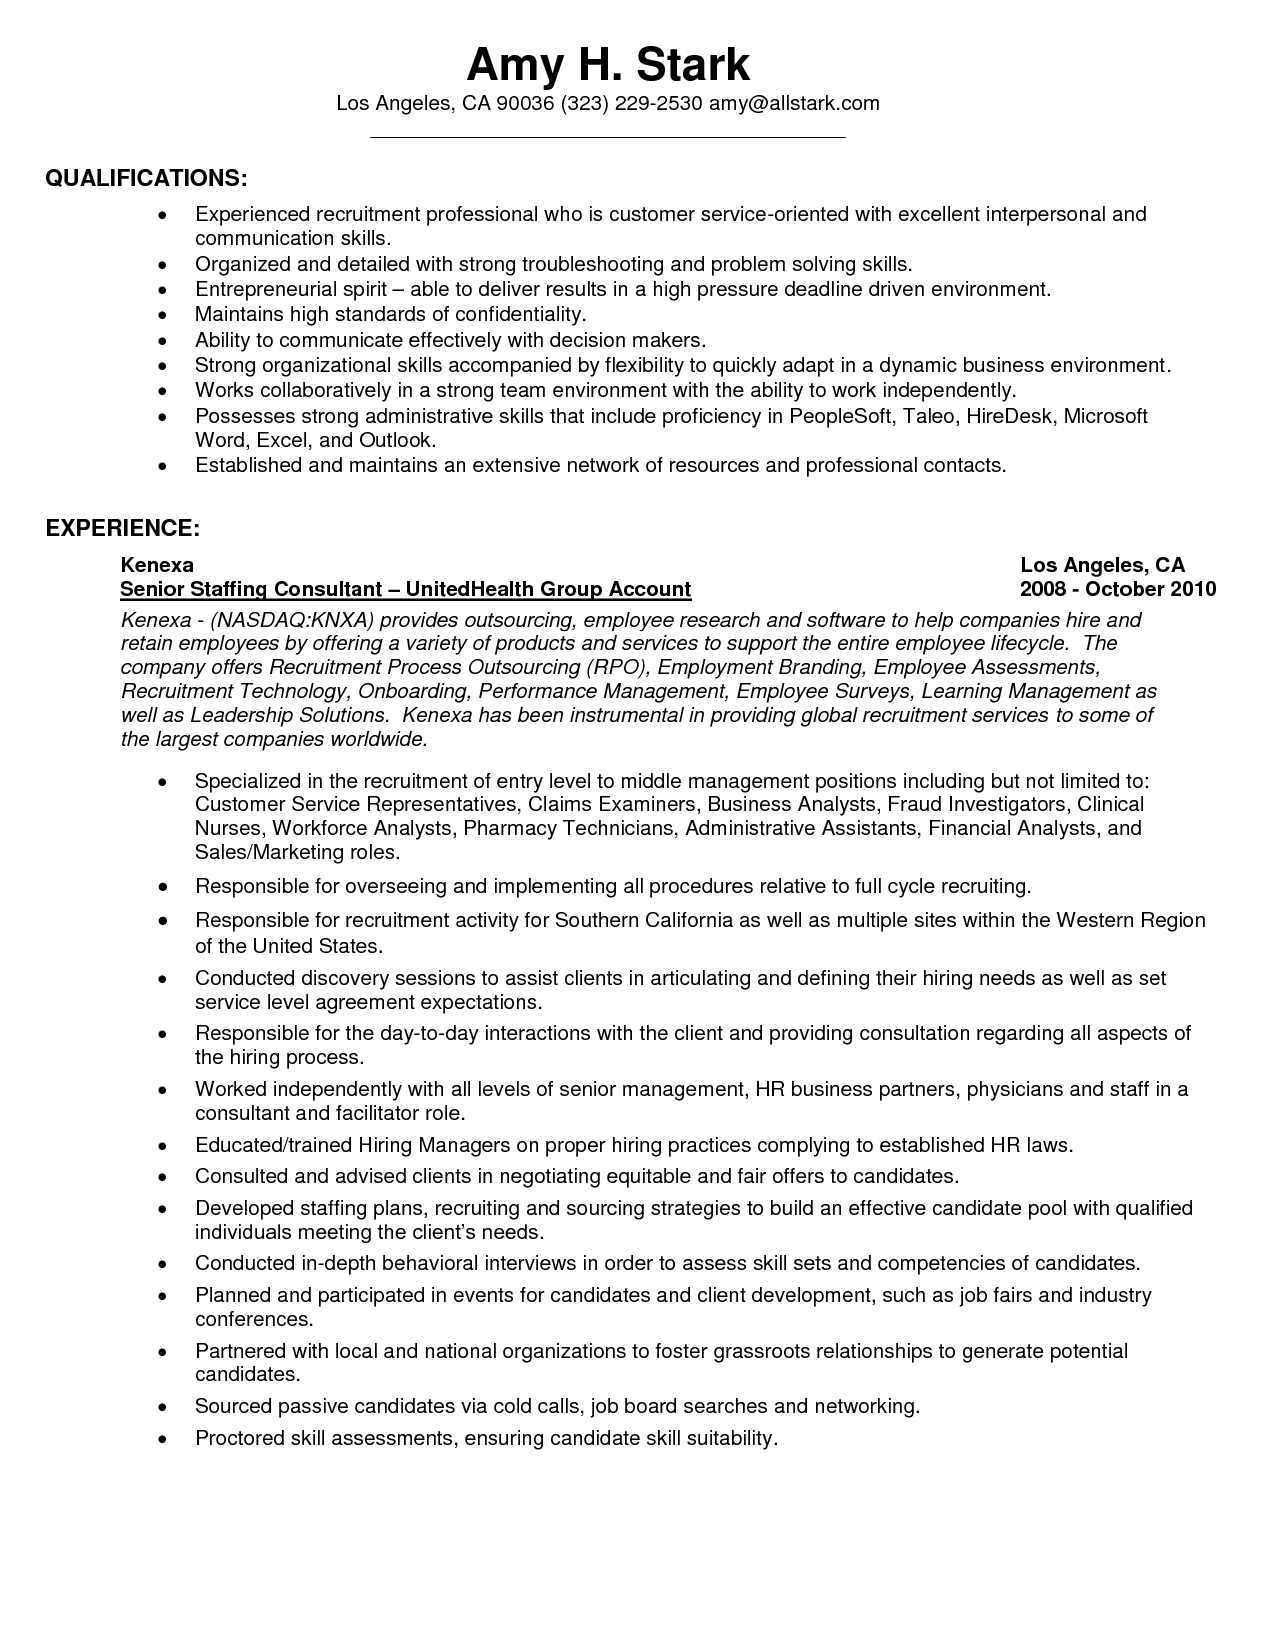 Sample Business Resume Excellent Customer Service Skills Resume  Sample Resume Center